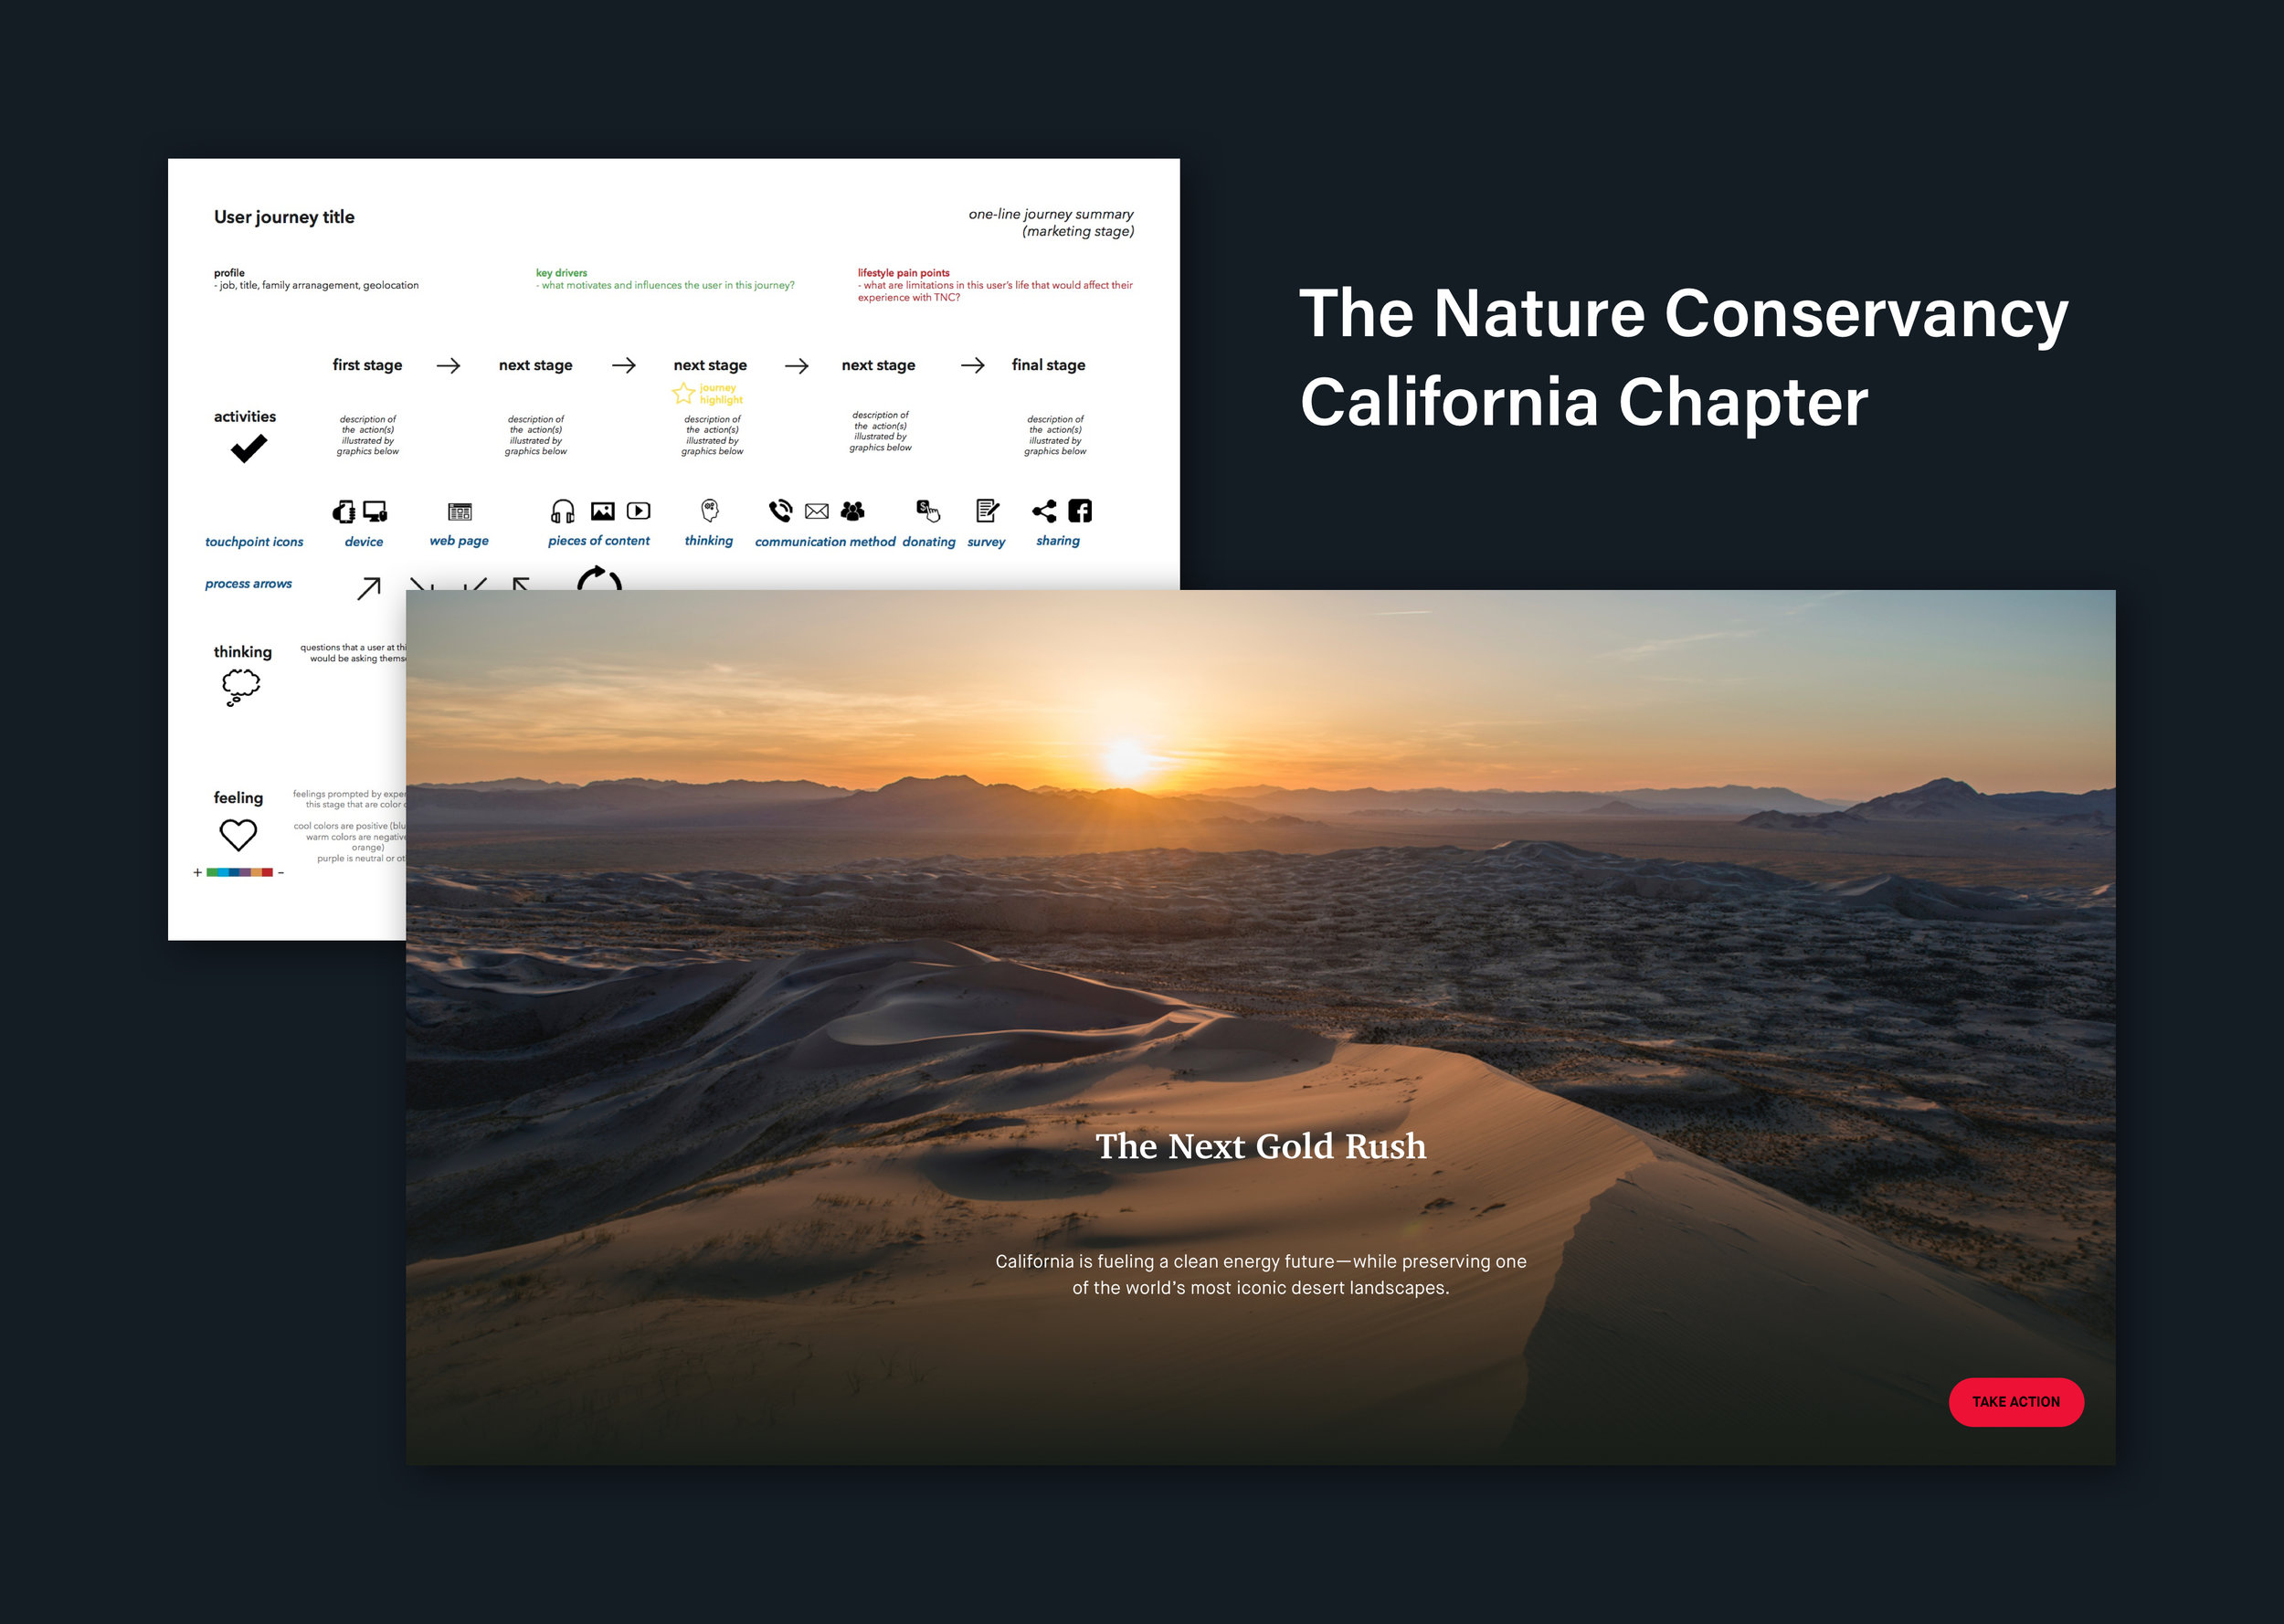 Previous Project: ConserveCA - Website UX & Redesign